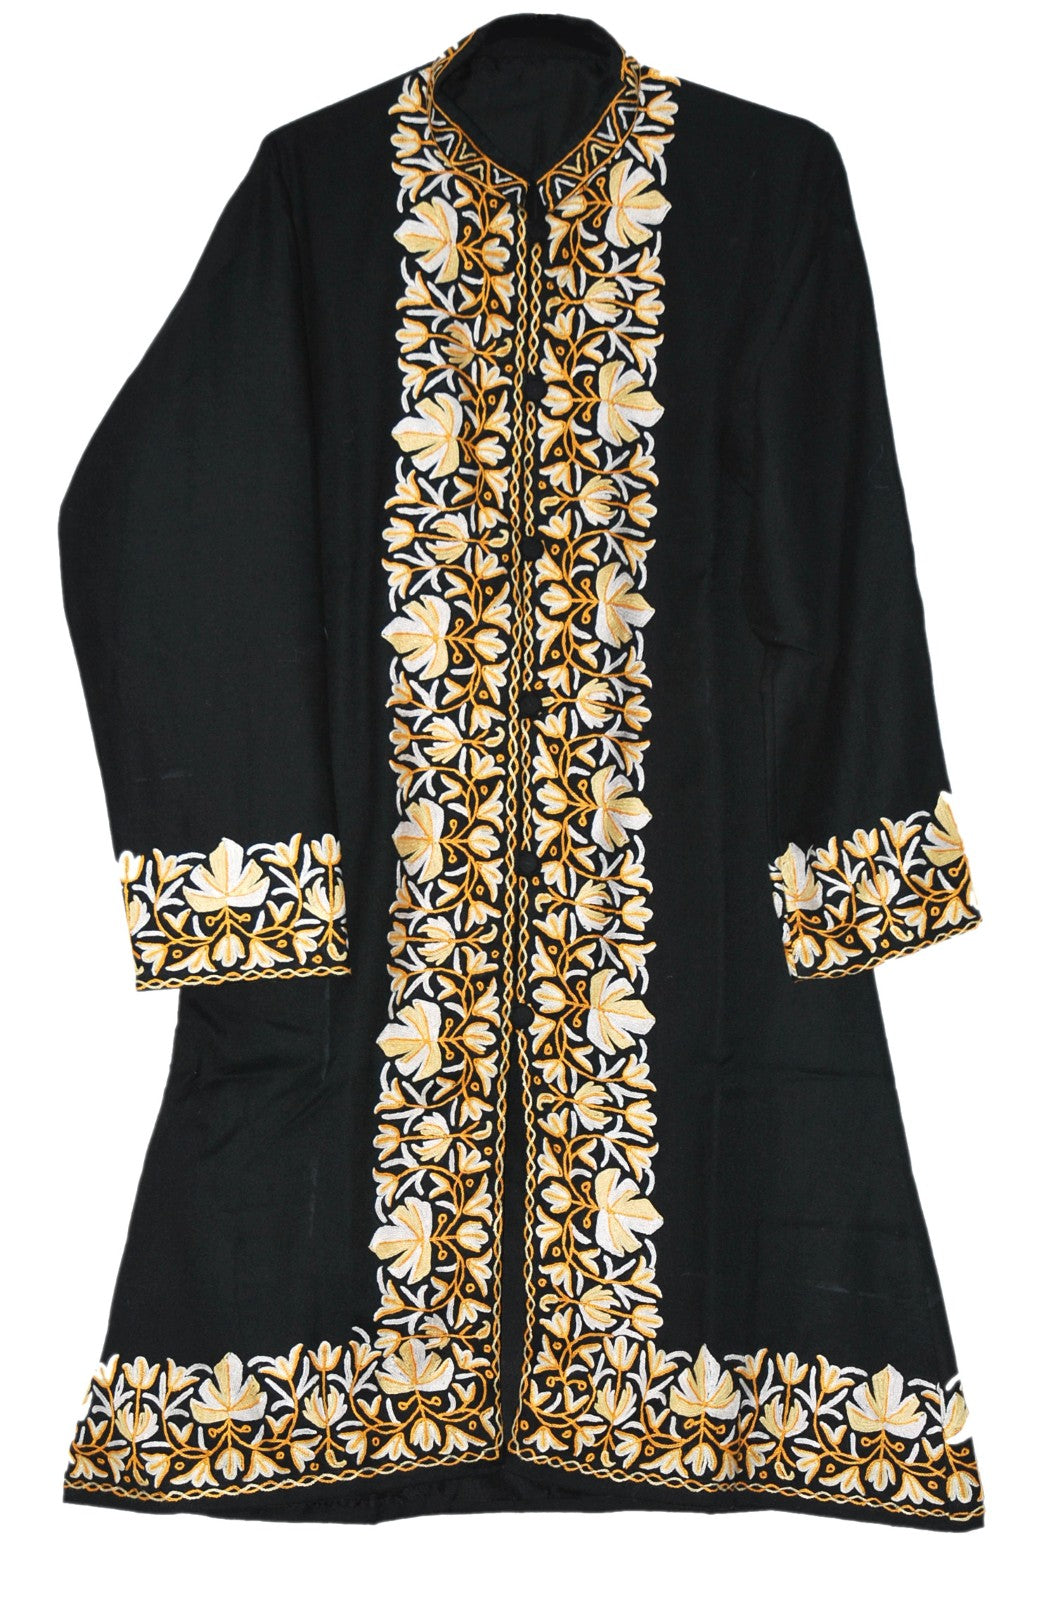 Embroidered Woolen Coat Black Cream And Yellow Embroidery Bd 120